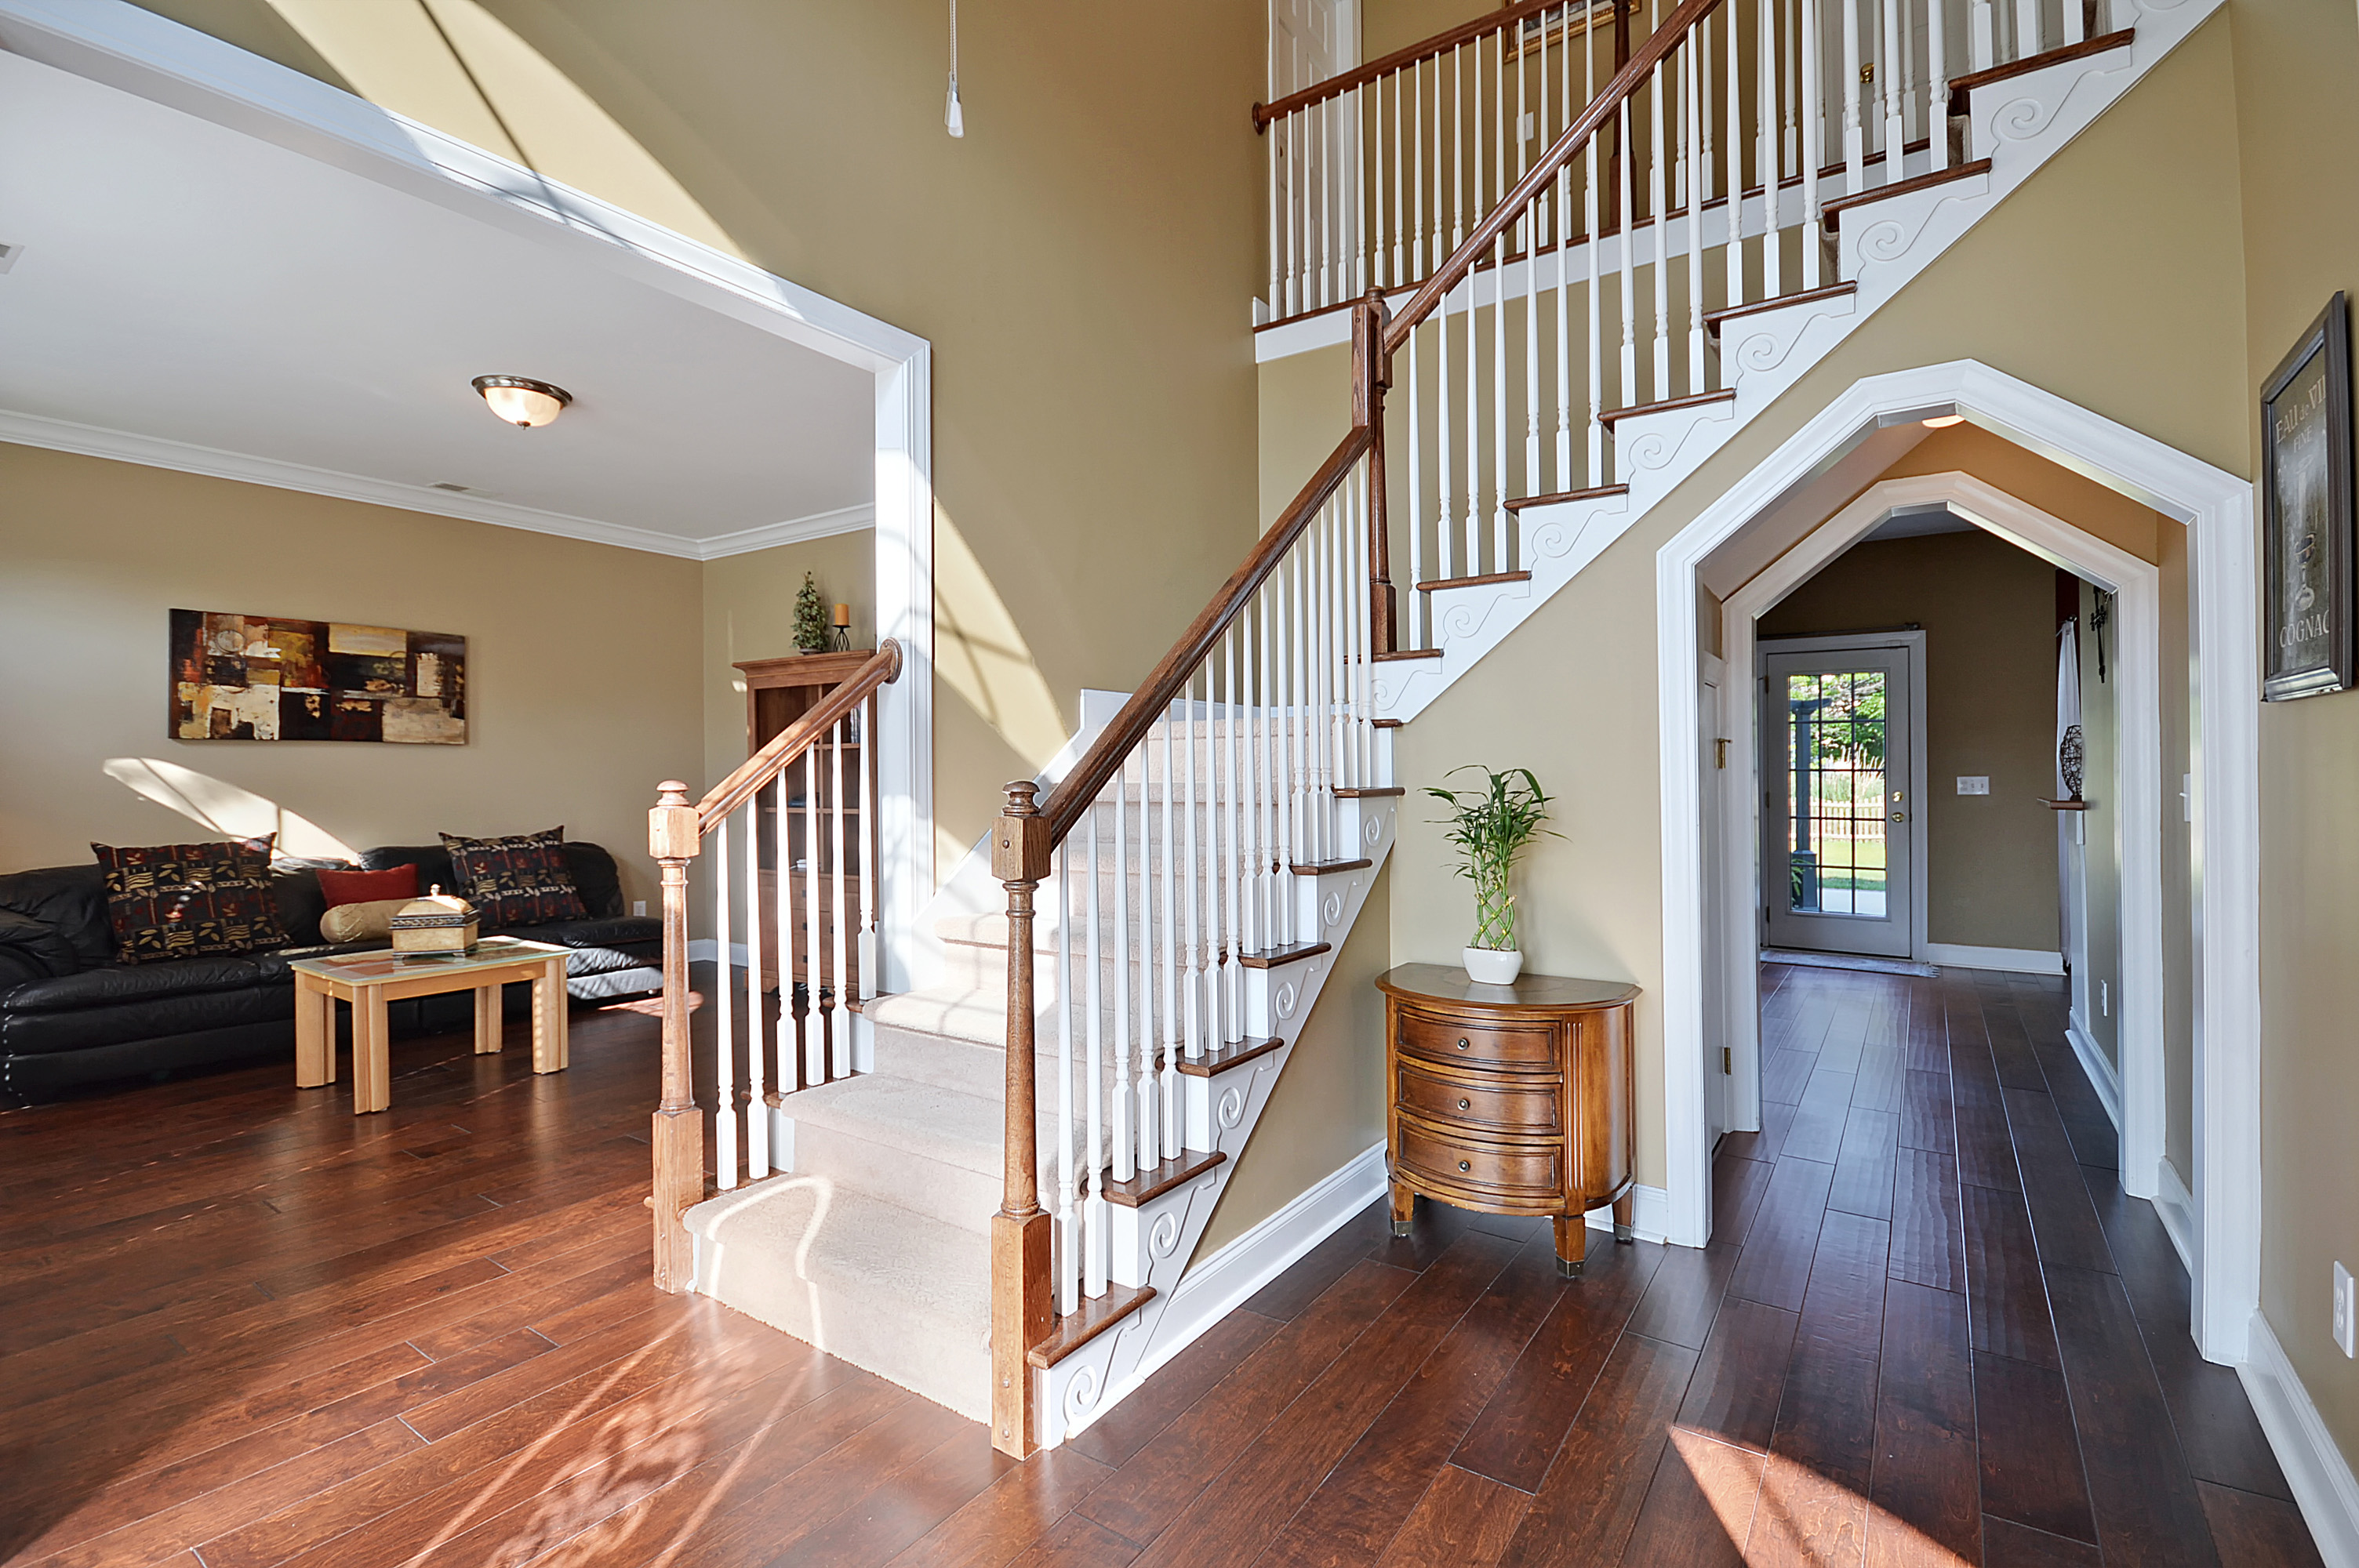 4921 pineridge rd gorgeous new summerville sc listing wescott plantation - Plants for every room in your home extra comfort and health ...